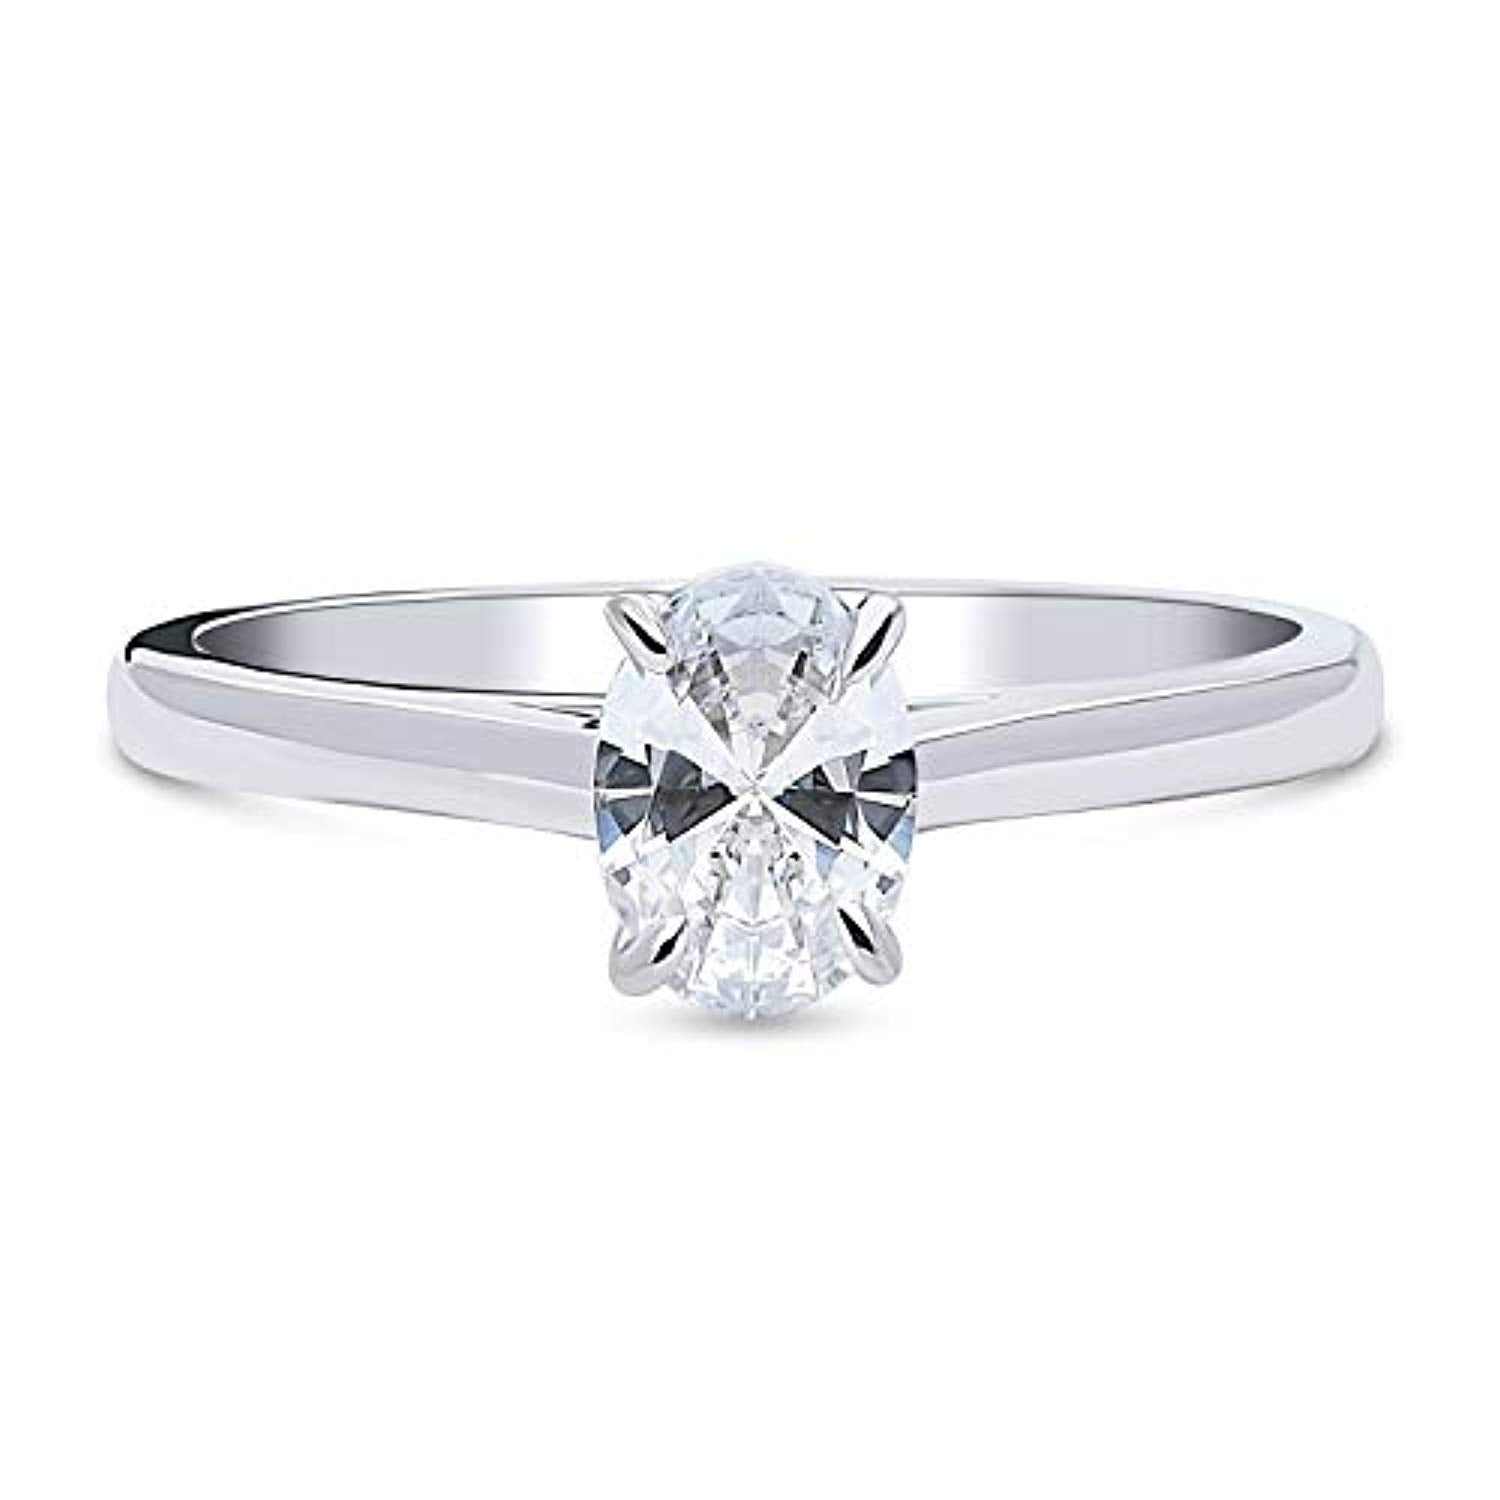 Rhodium Plated Sterling Silver Solitaire Promise Engagement Ring Made with Swarovski Zirconia Oval Cut